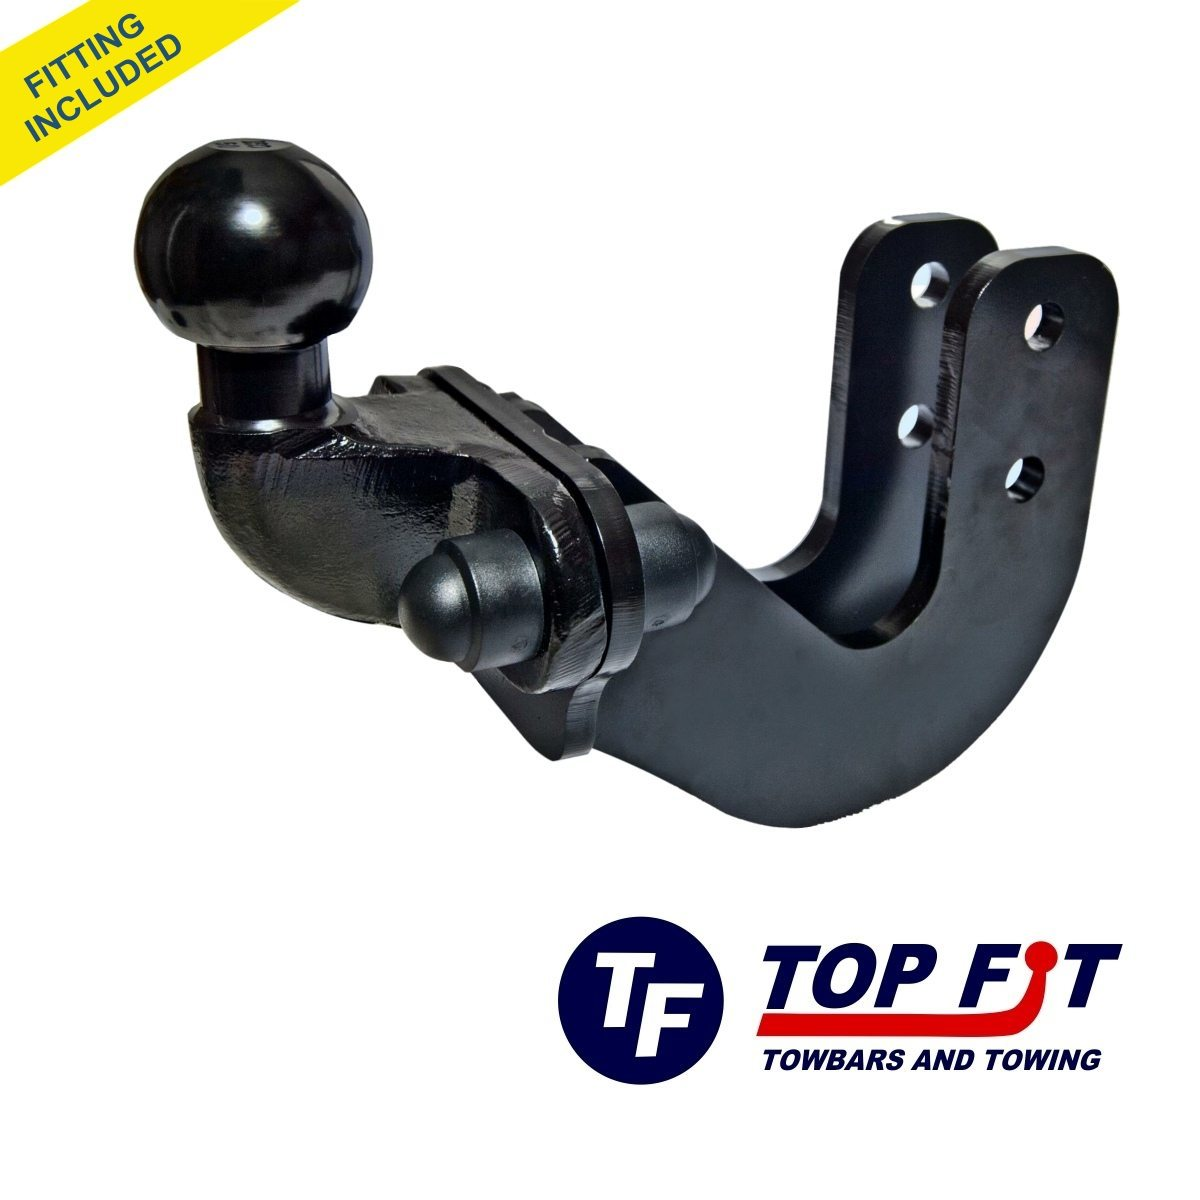 Vehicle Specific Wiring 169 Page 2 Top Fit Towbars And Towing Mercedes Vito Towbar Seat Alhambra Flange